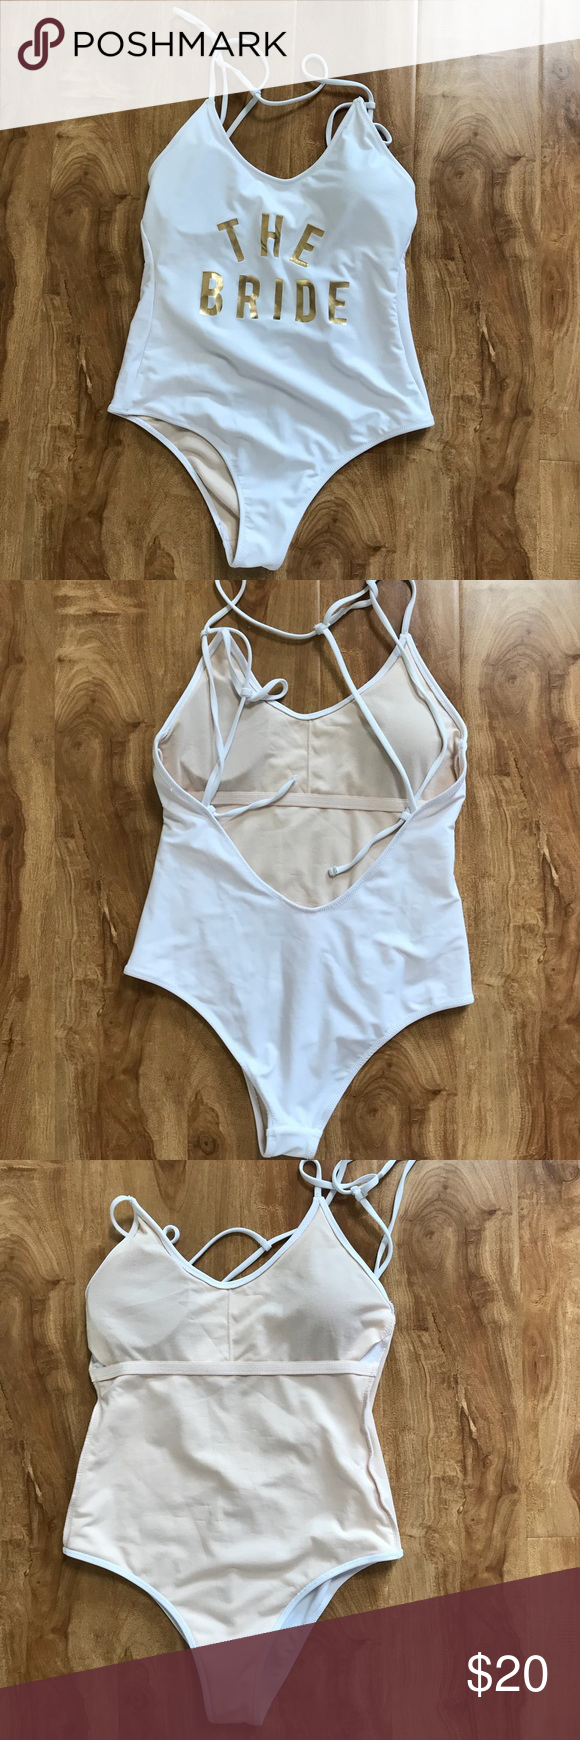 """ce79981364f41 Vanilla Beach """"The Bride"""" One Piece Swimsuit Small Sexy white """"The Bride""""  One Piece Swimsuit by Vanilla Beach. Not to shy? This suit has low arm  holes a ..."""